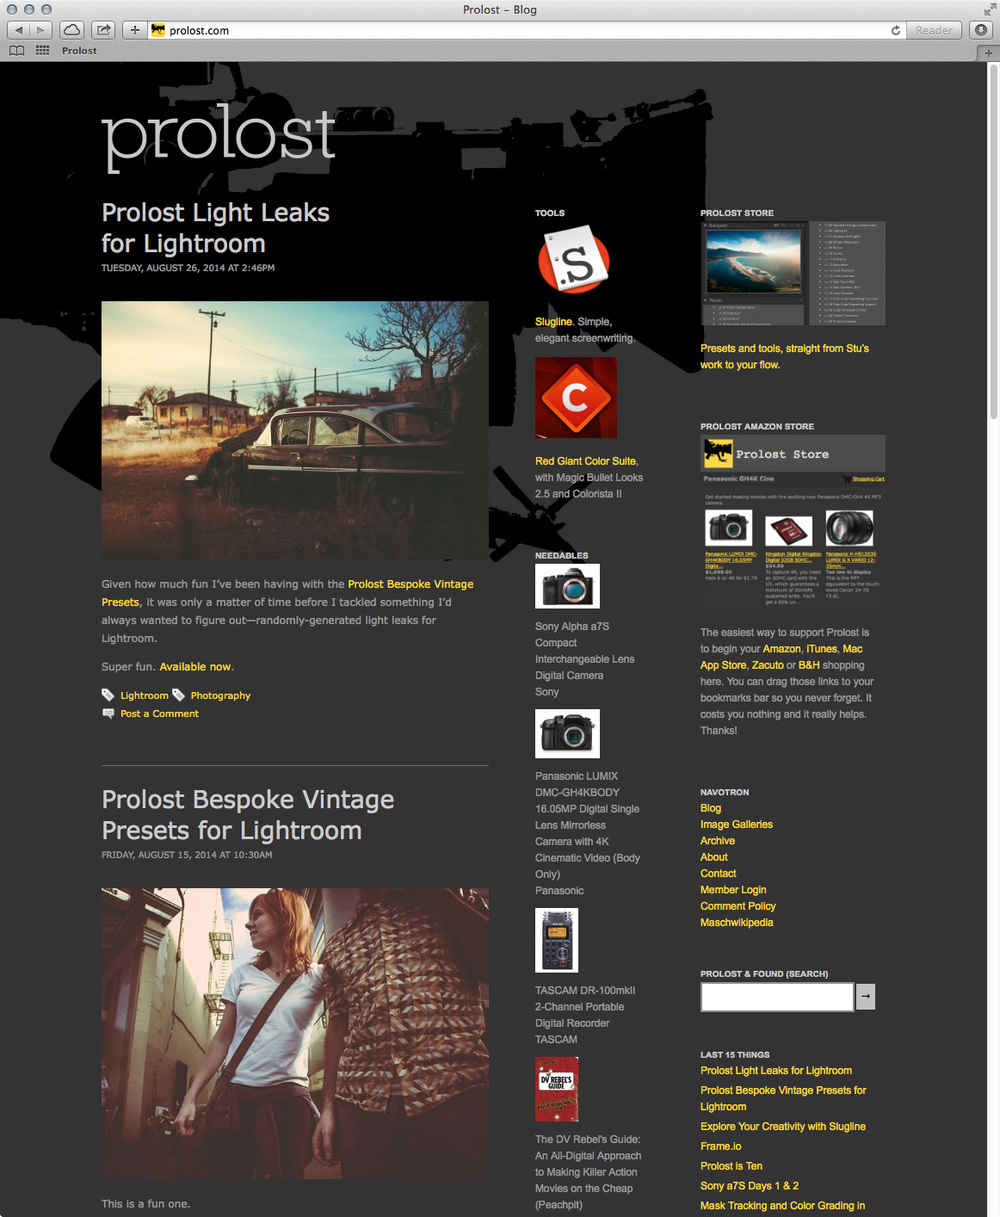 A snapshot of prolost.com on September 6, 2014